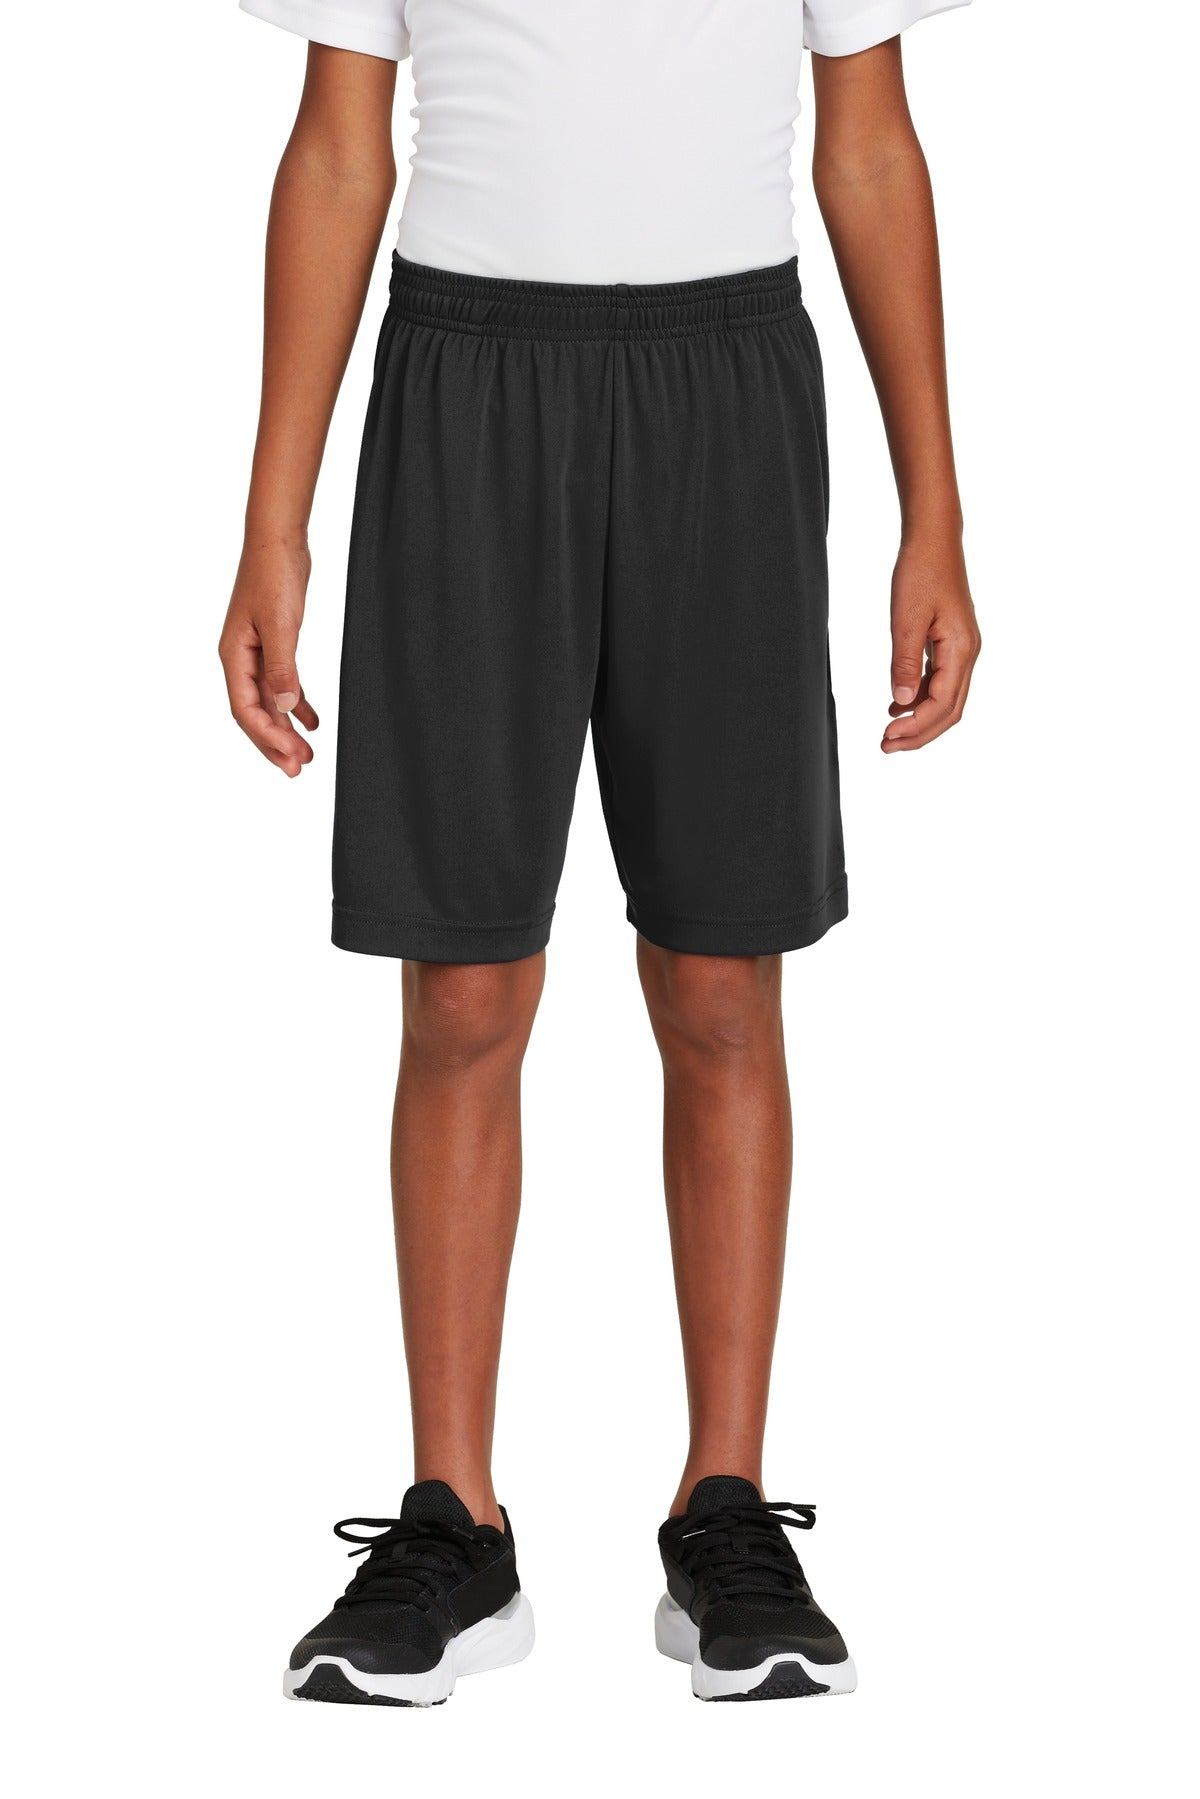 Sport-Tek ® Youth PosiCharge ® Competitor ™ Pocketed Short